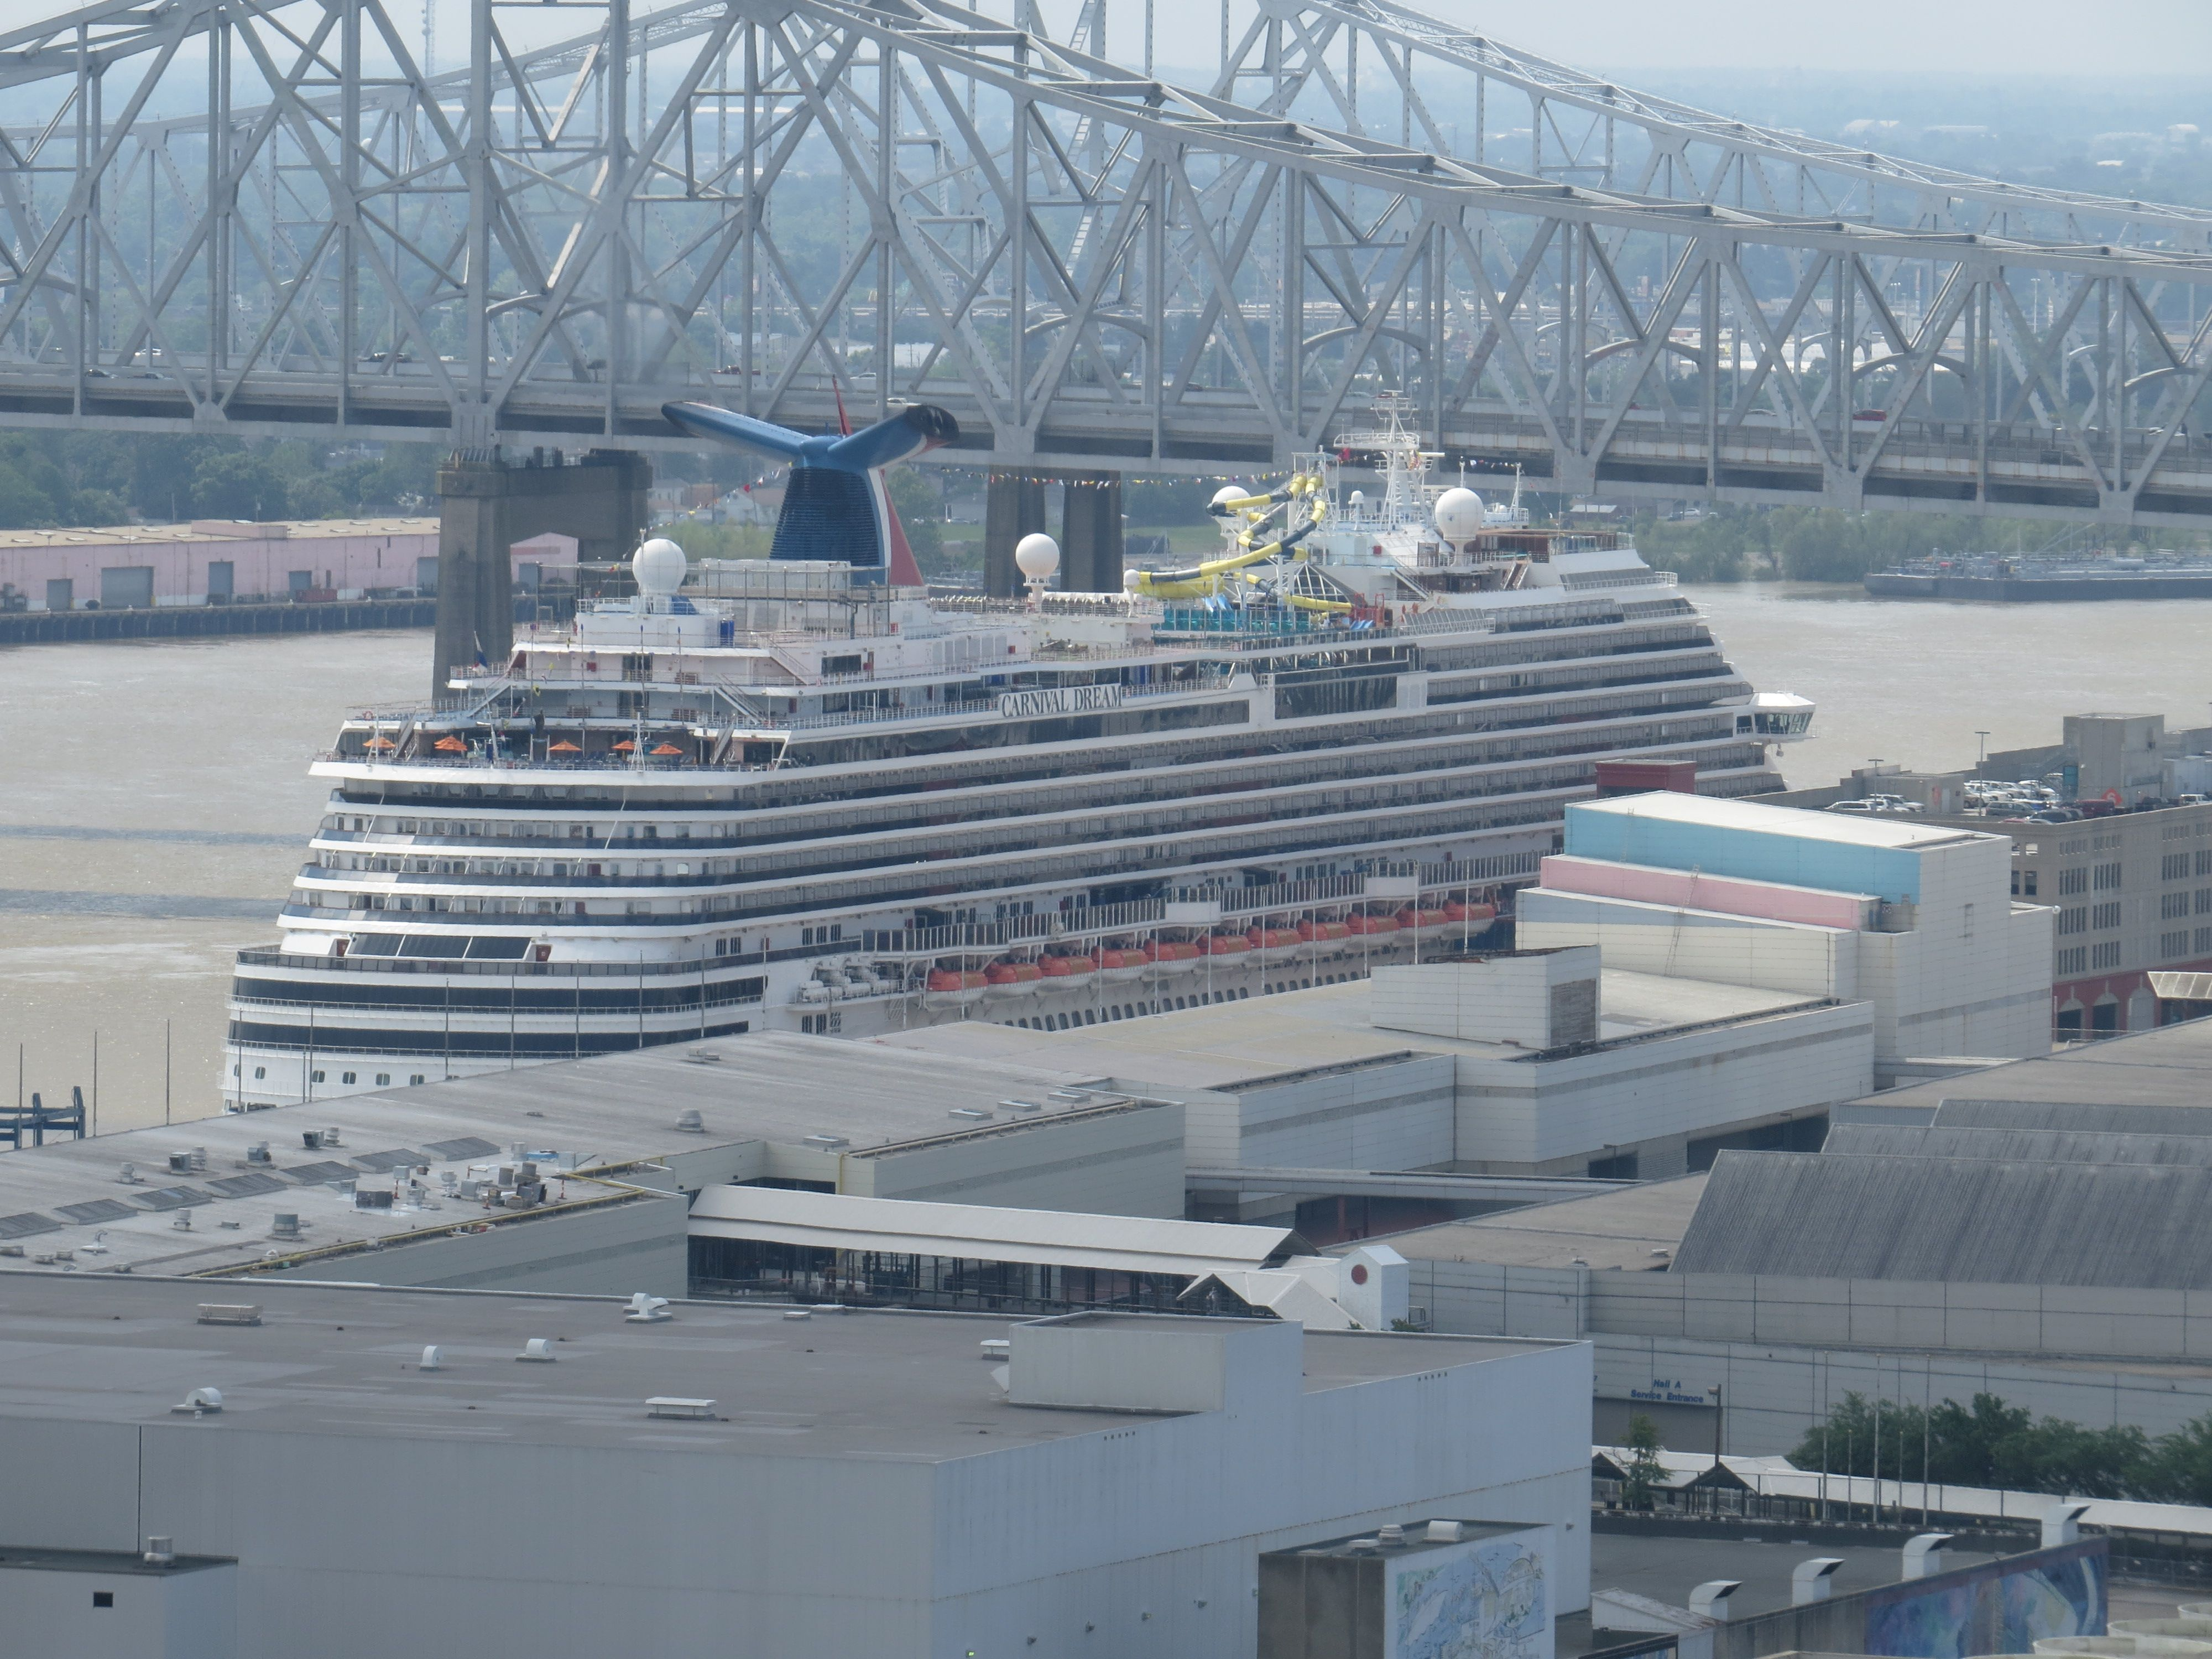 Port Of New Orleans New Orleans Pinterest Cruises - New orleans cruise ship terminal